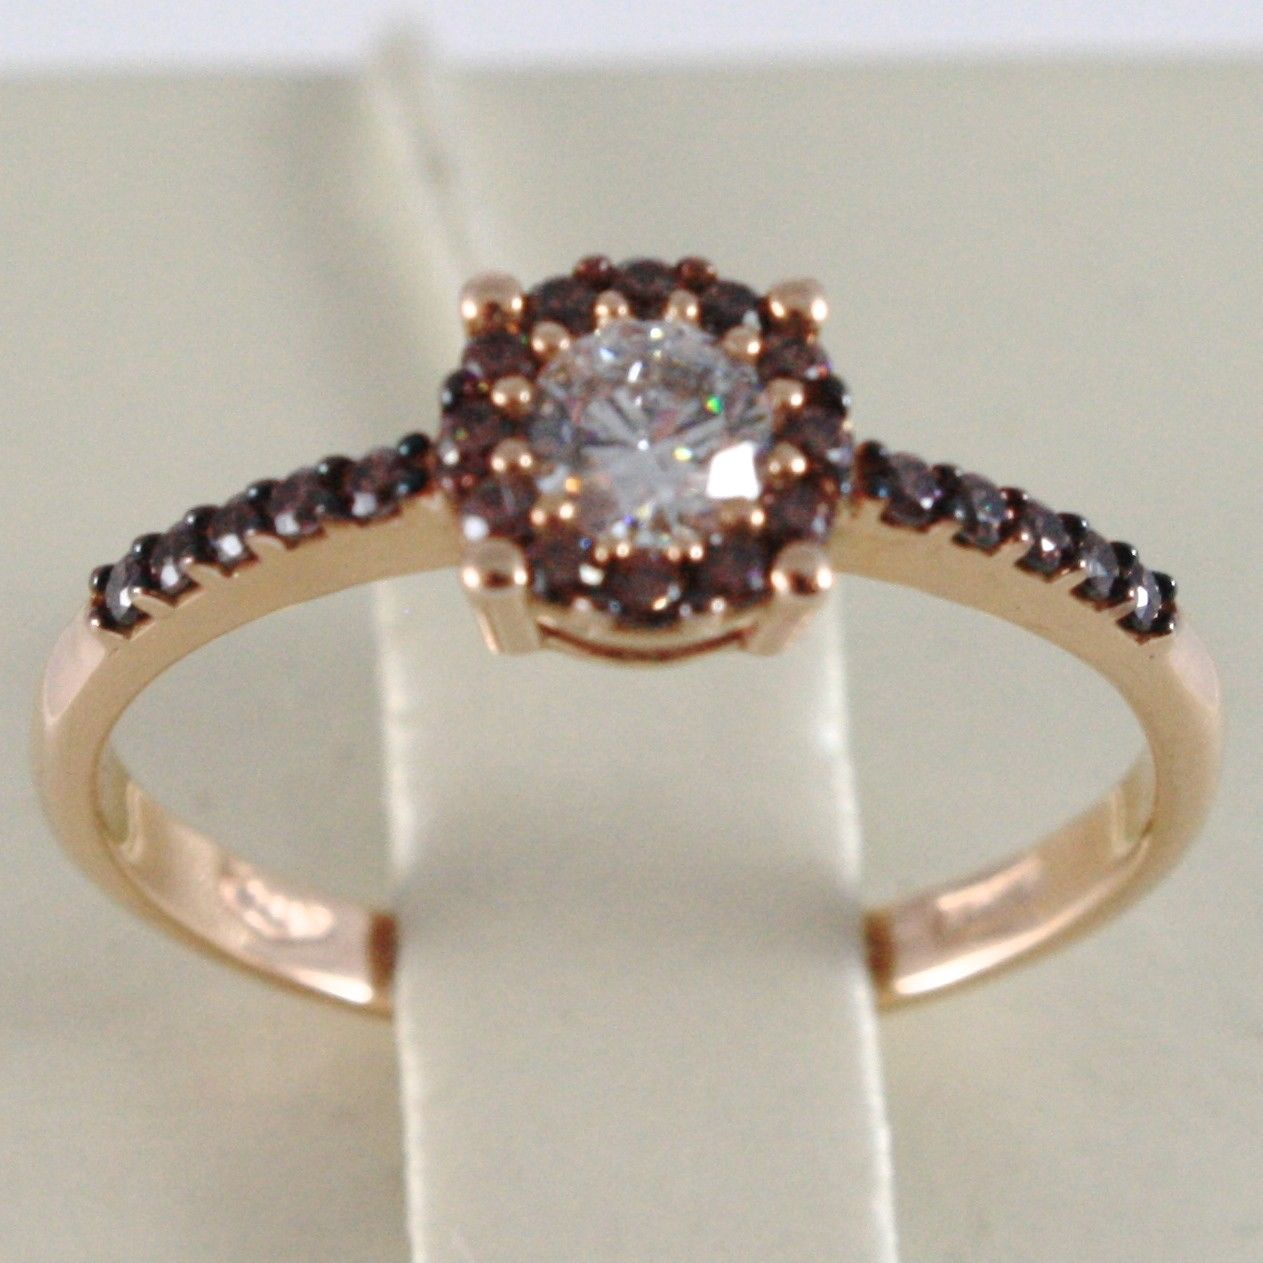 18K ROSE GOLD BAND RING, ETERNITY SOLITAIRE WITH ZIRCONIA, BROWN, MADE IN ITALY